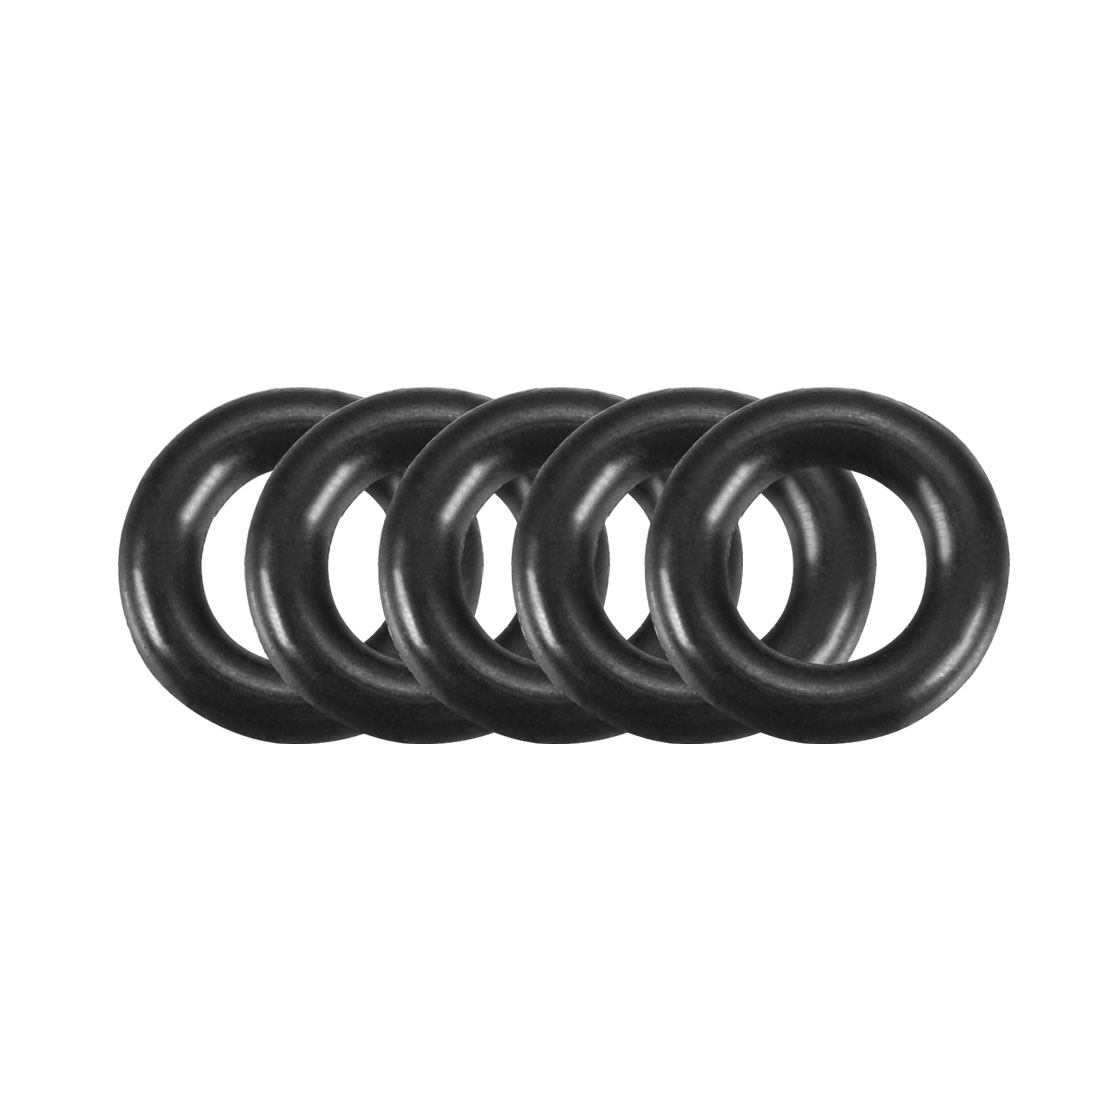 100Pcs 6.5x1.5mm Nitrile Rubber O-rings Heat Resistant Sealing Ring Grommets